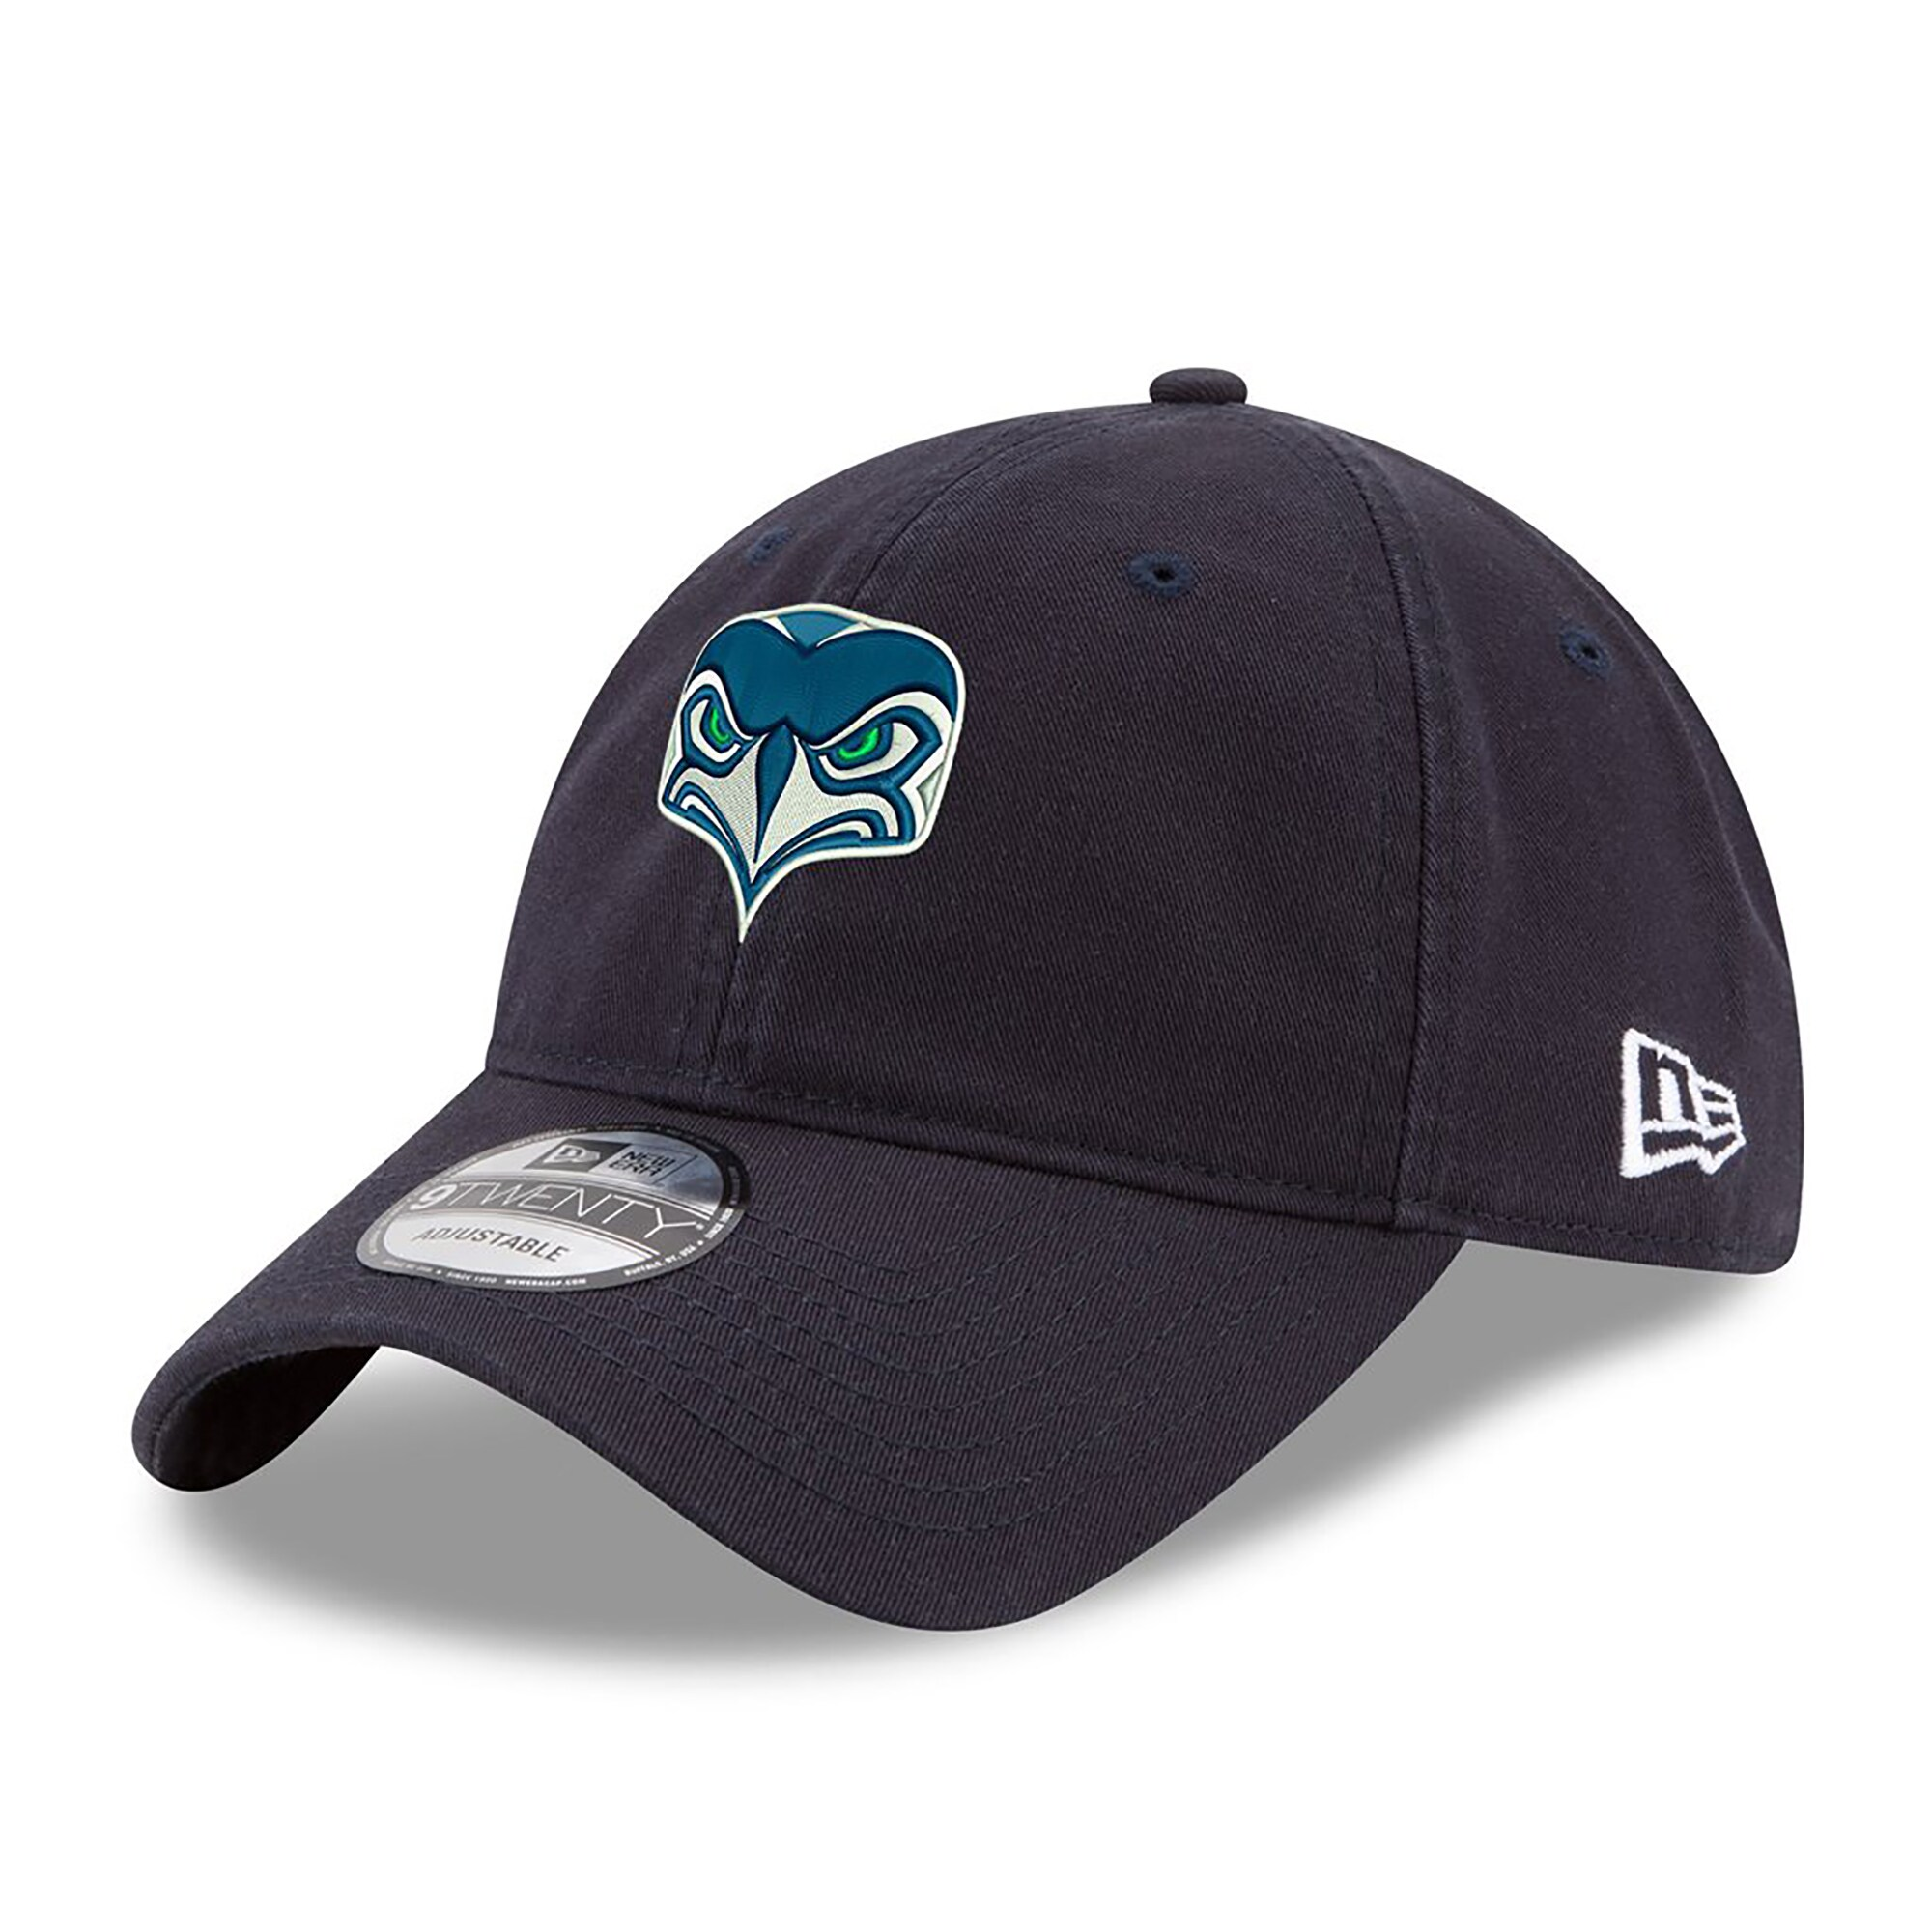 Youth Seattle Seahawks New Era Alternate Team Logo Gear 9TWENTY Adjustable Hat - College Navy